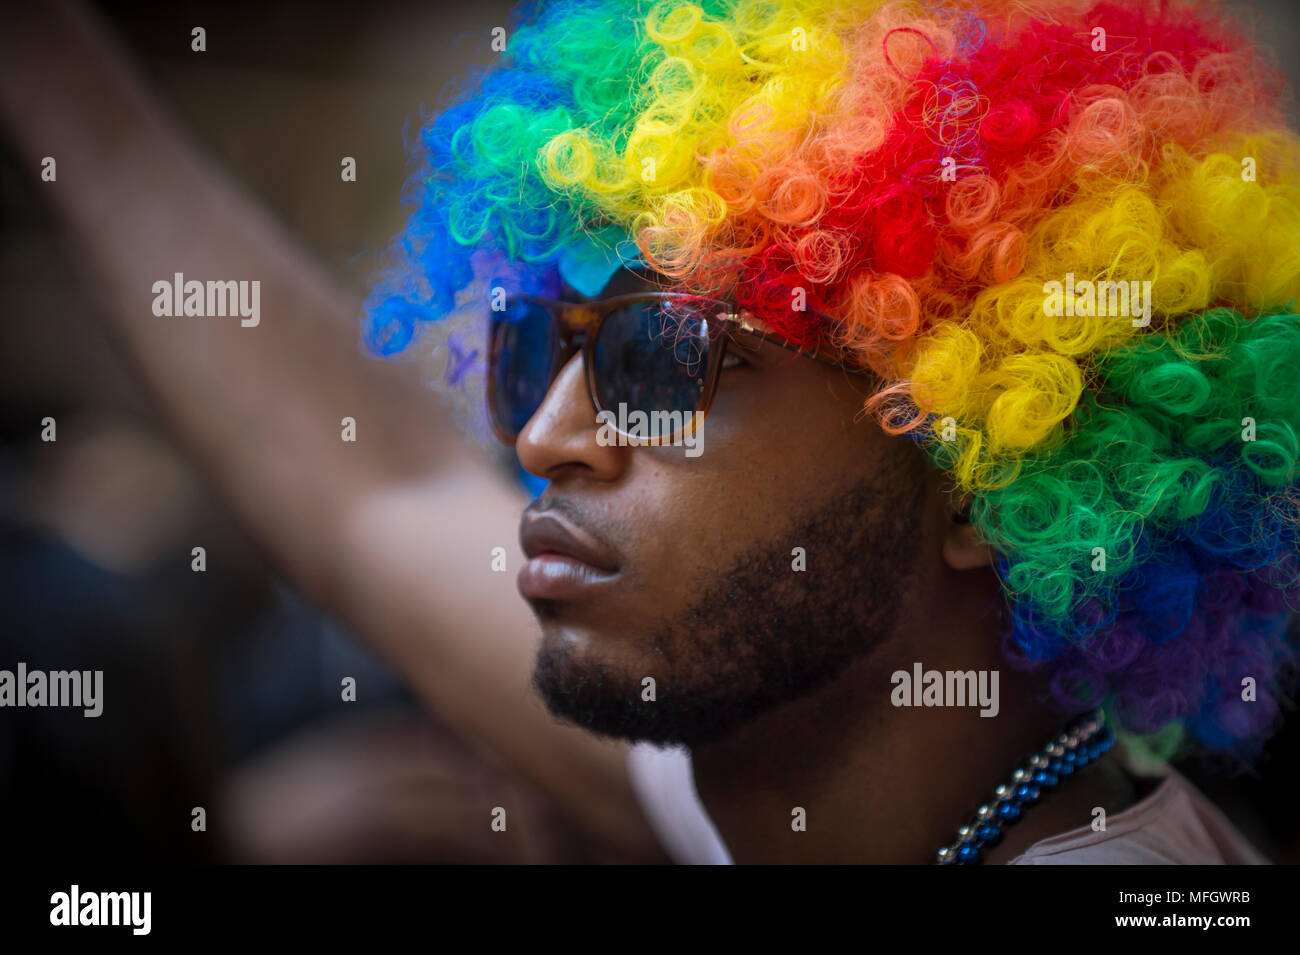 NEW YORK CITY - JUNE 25, 2017: Supporter in a rainbow afro wig on the sidelines of the annual Pride Parade as it passes through Greenwich Village. - Stock Image